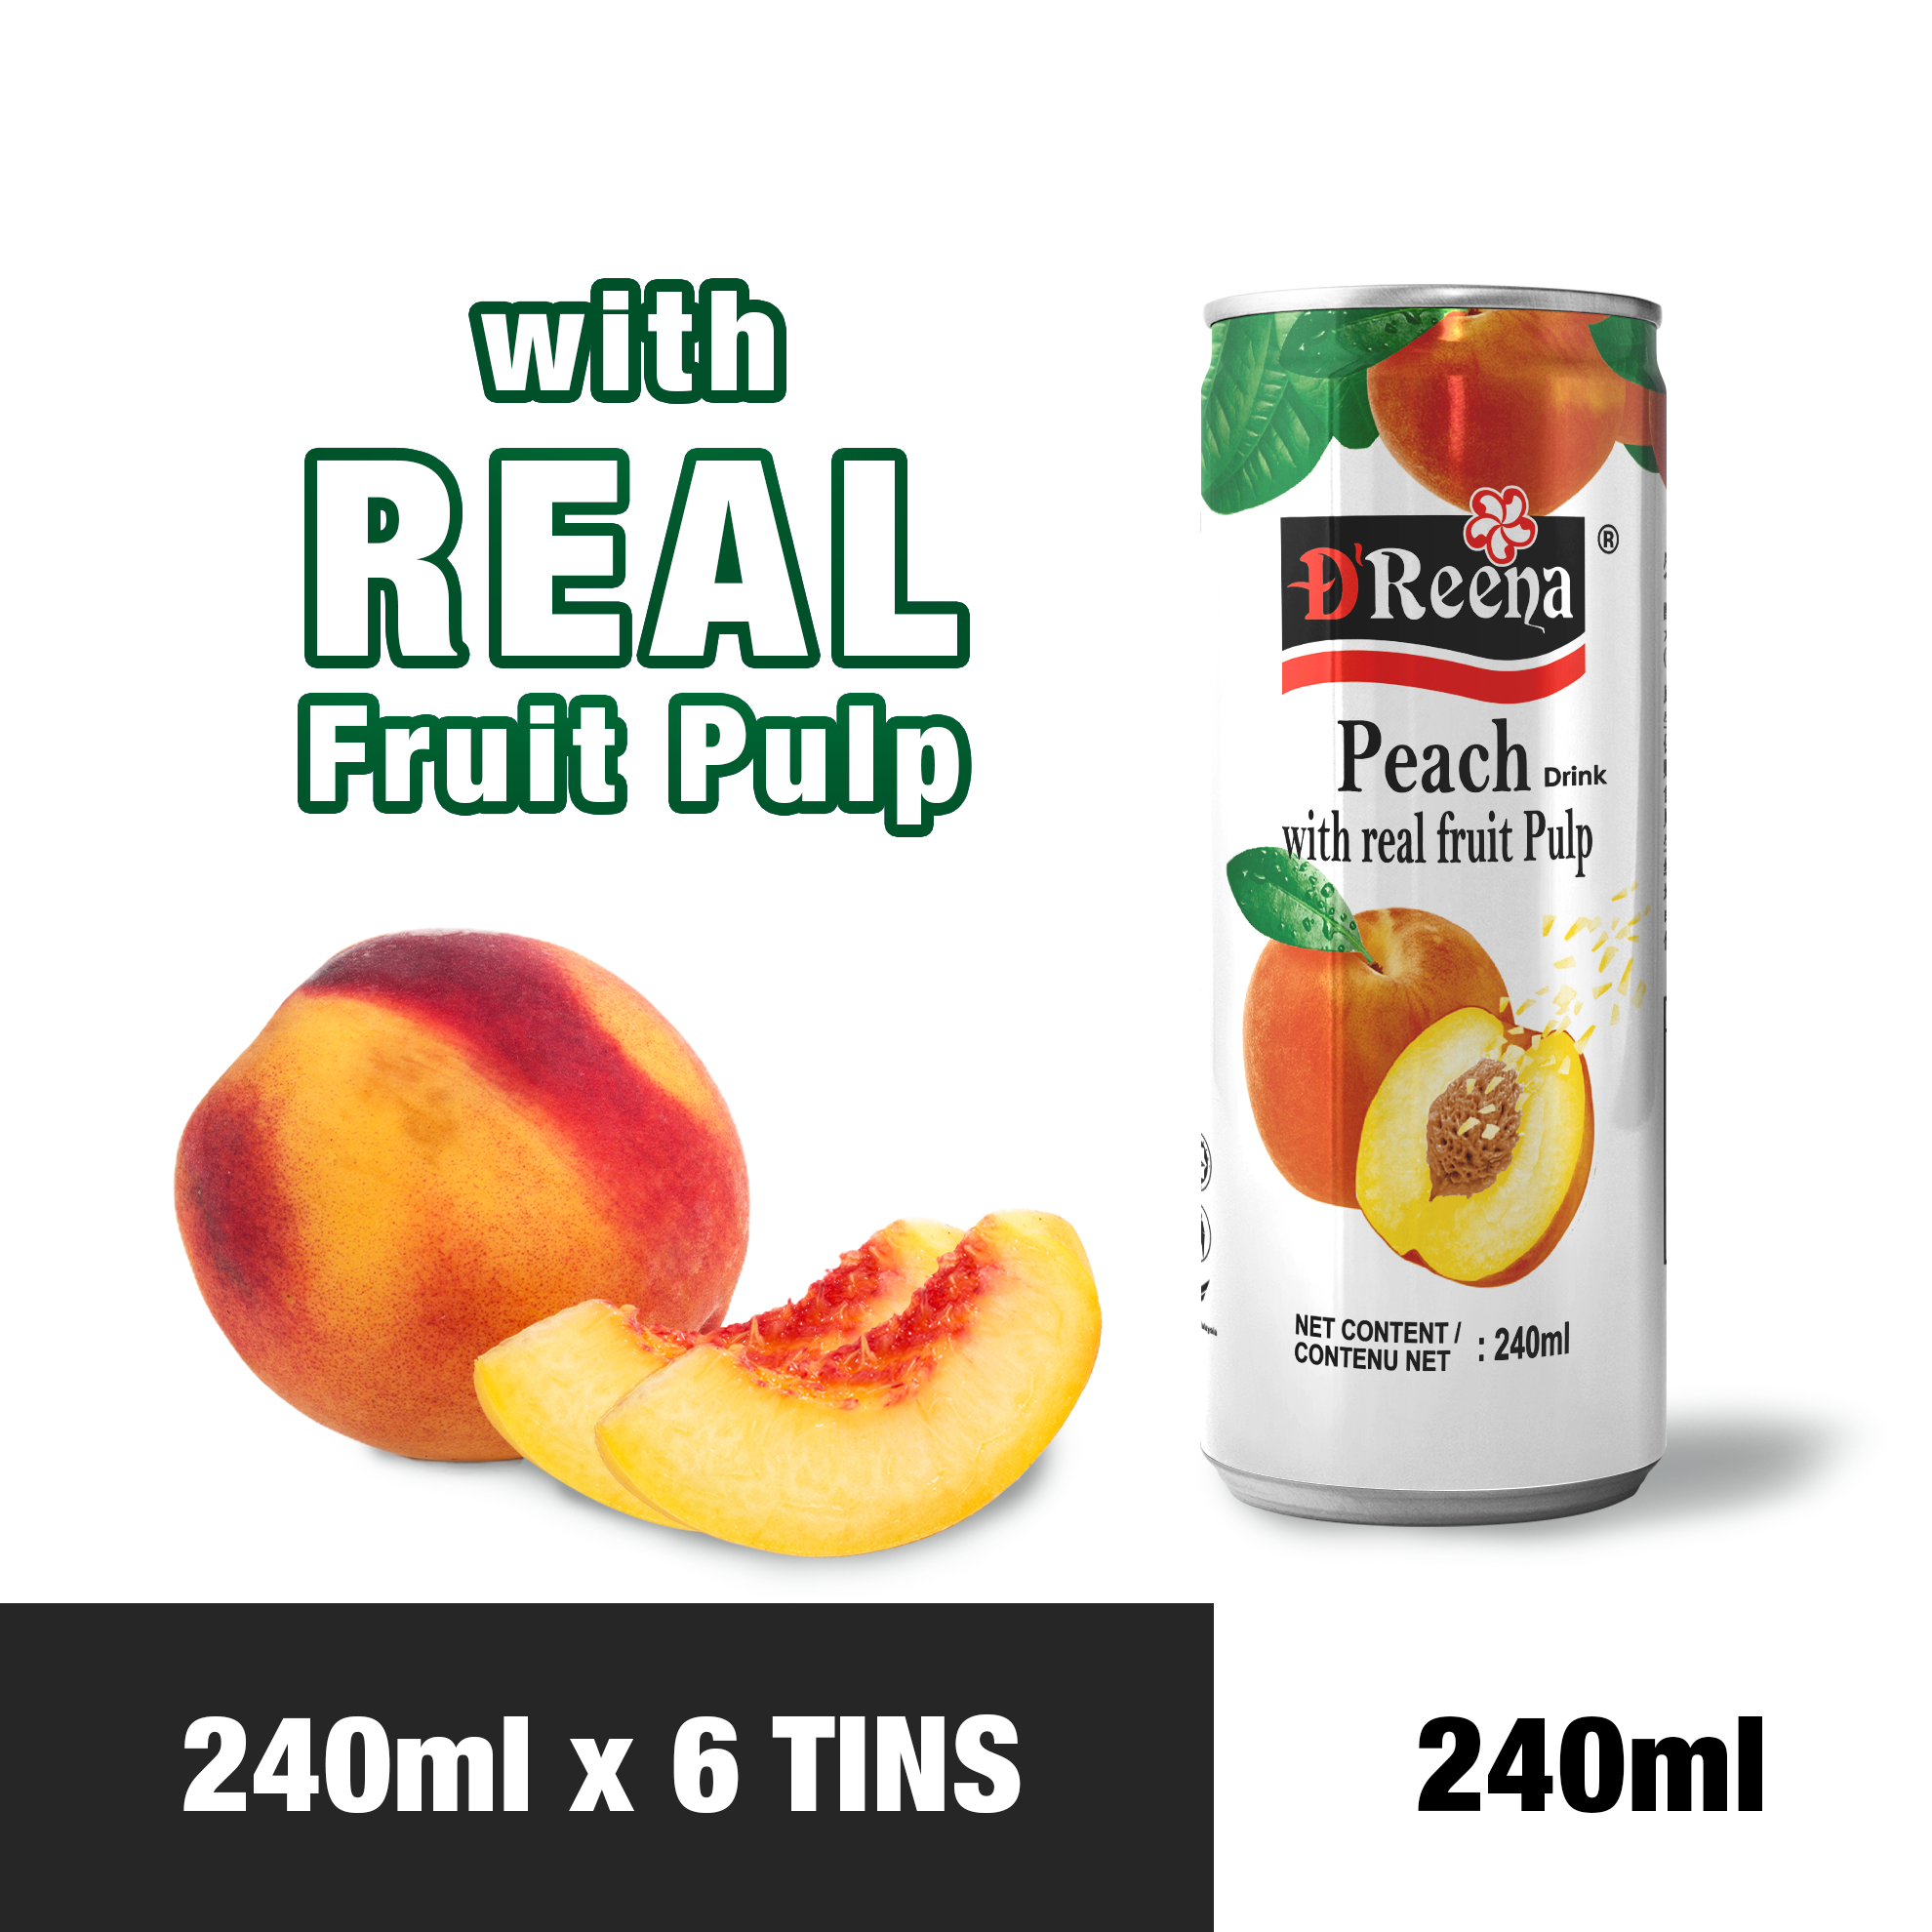 D'Reena Peach Drink with Real Fruit Pulp (240ml x 6tins)